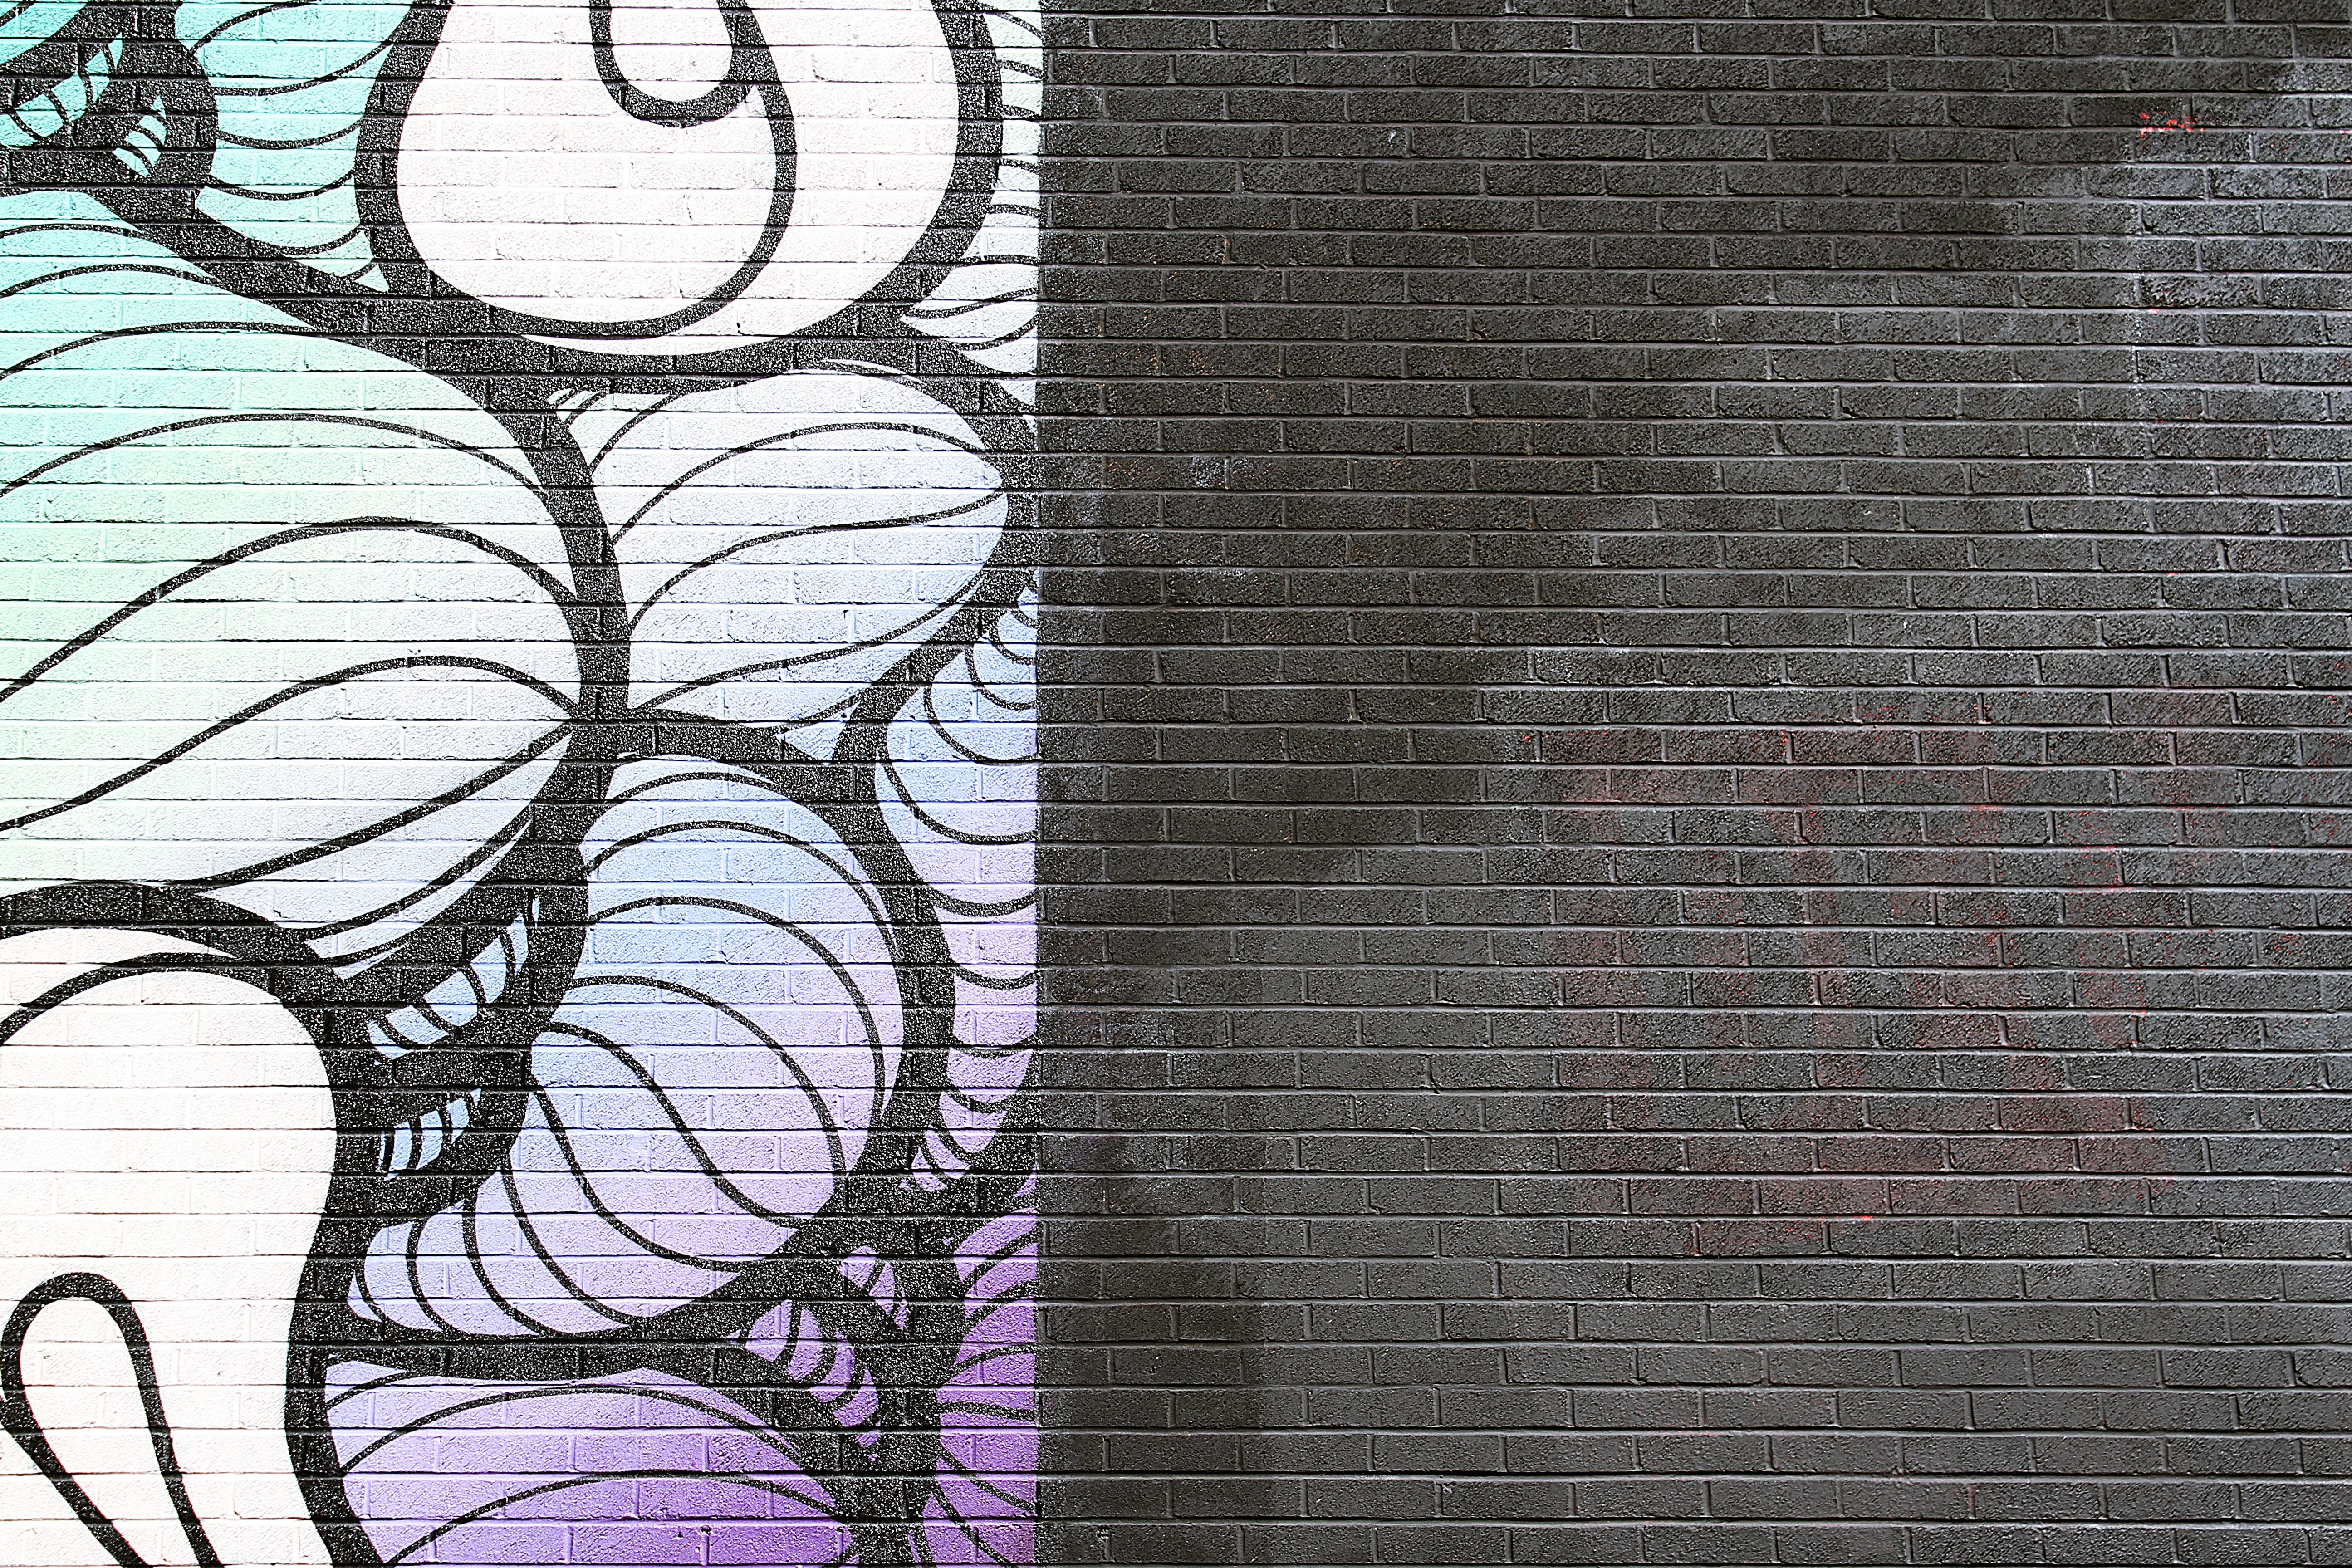 London wall painted half black with abstract mural on left half